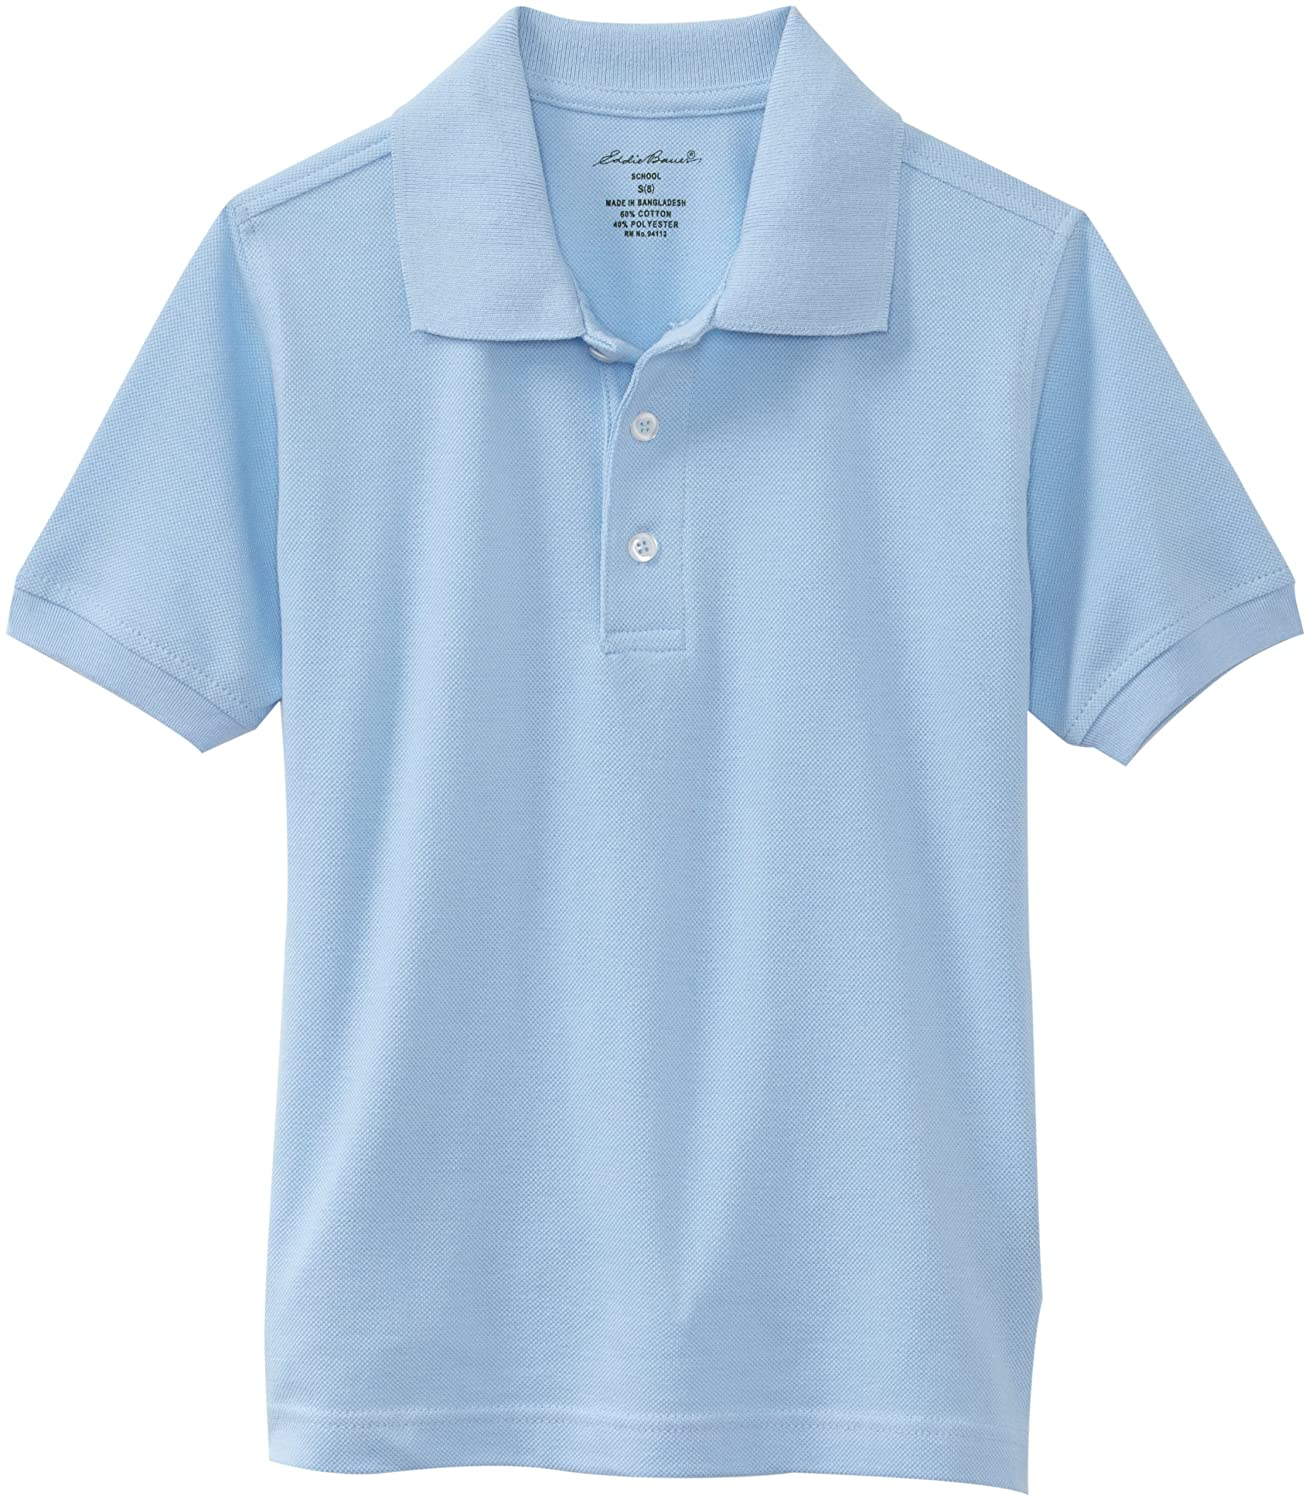 Eddie Bauer boys Big Boys' Short Sleeve Pique Polo Shirt T7HC75